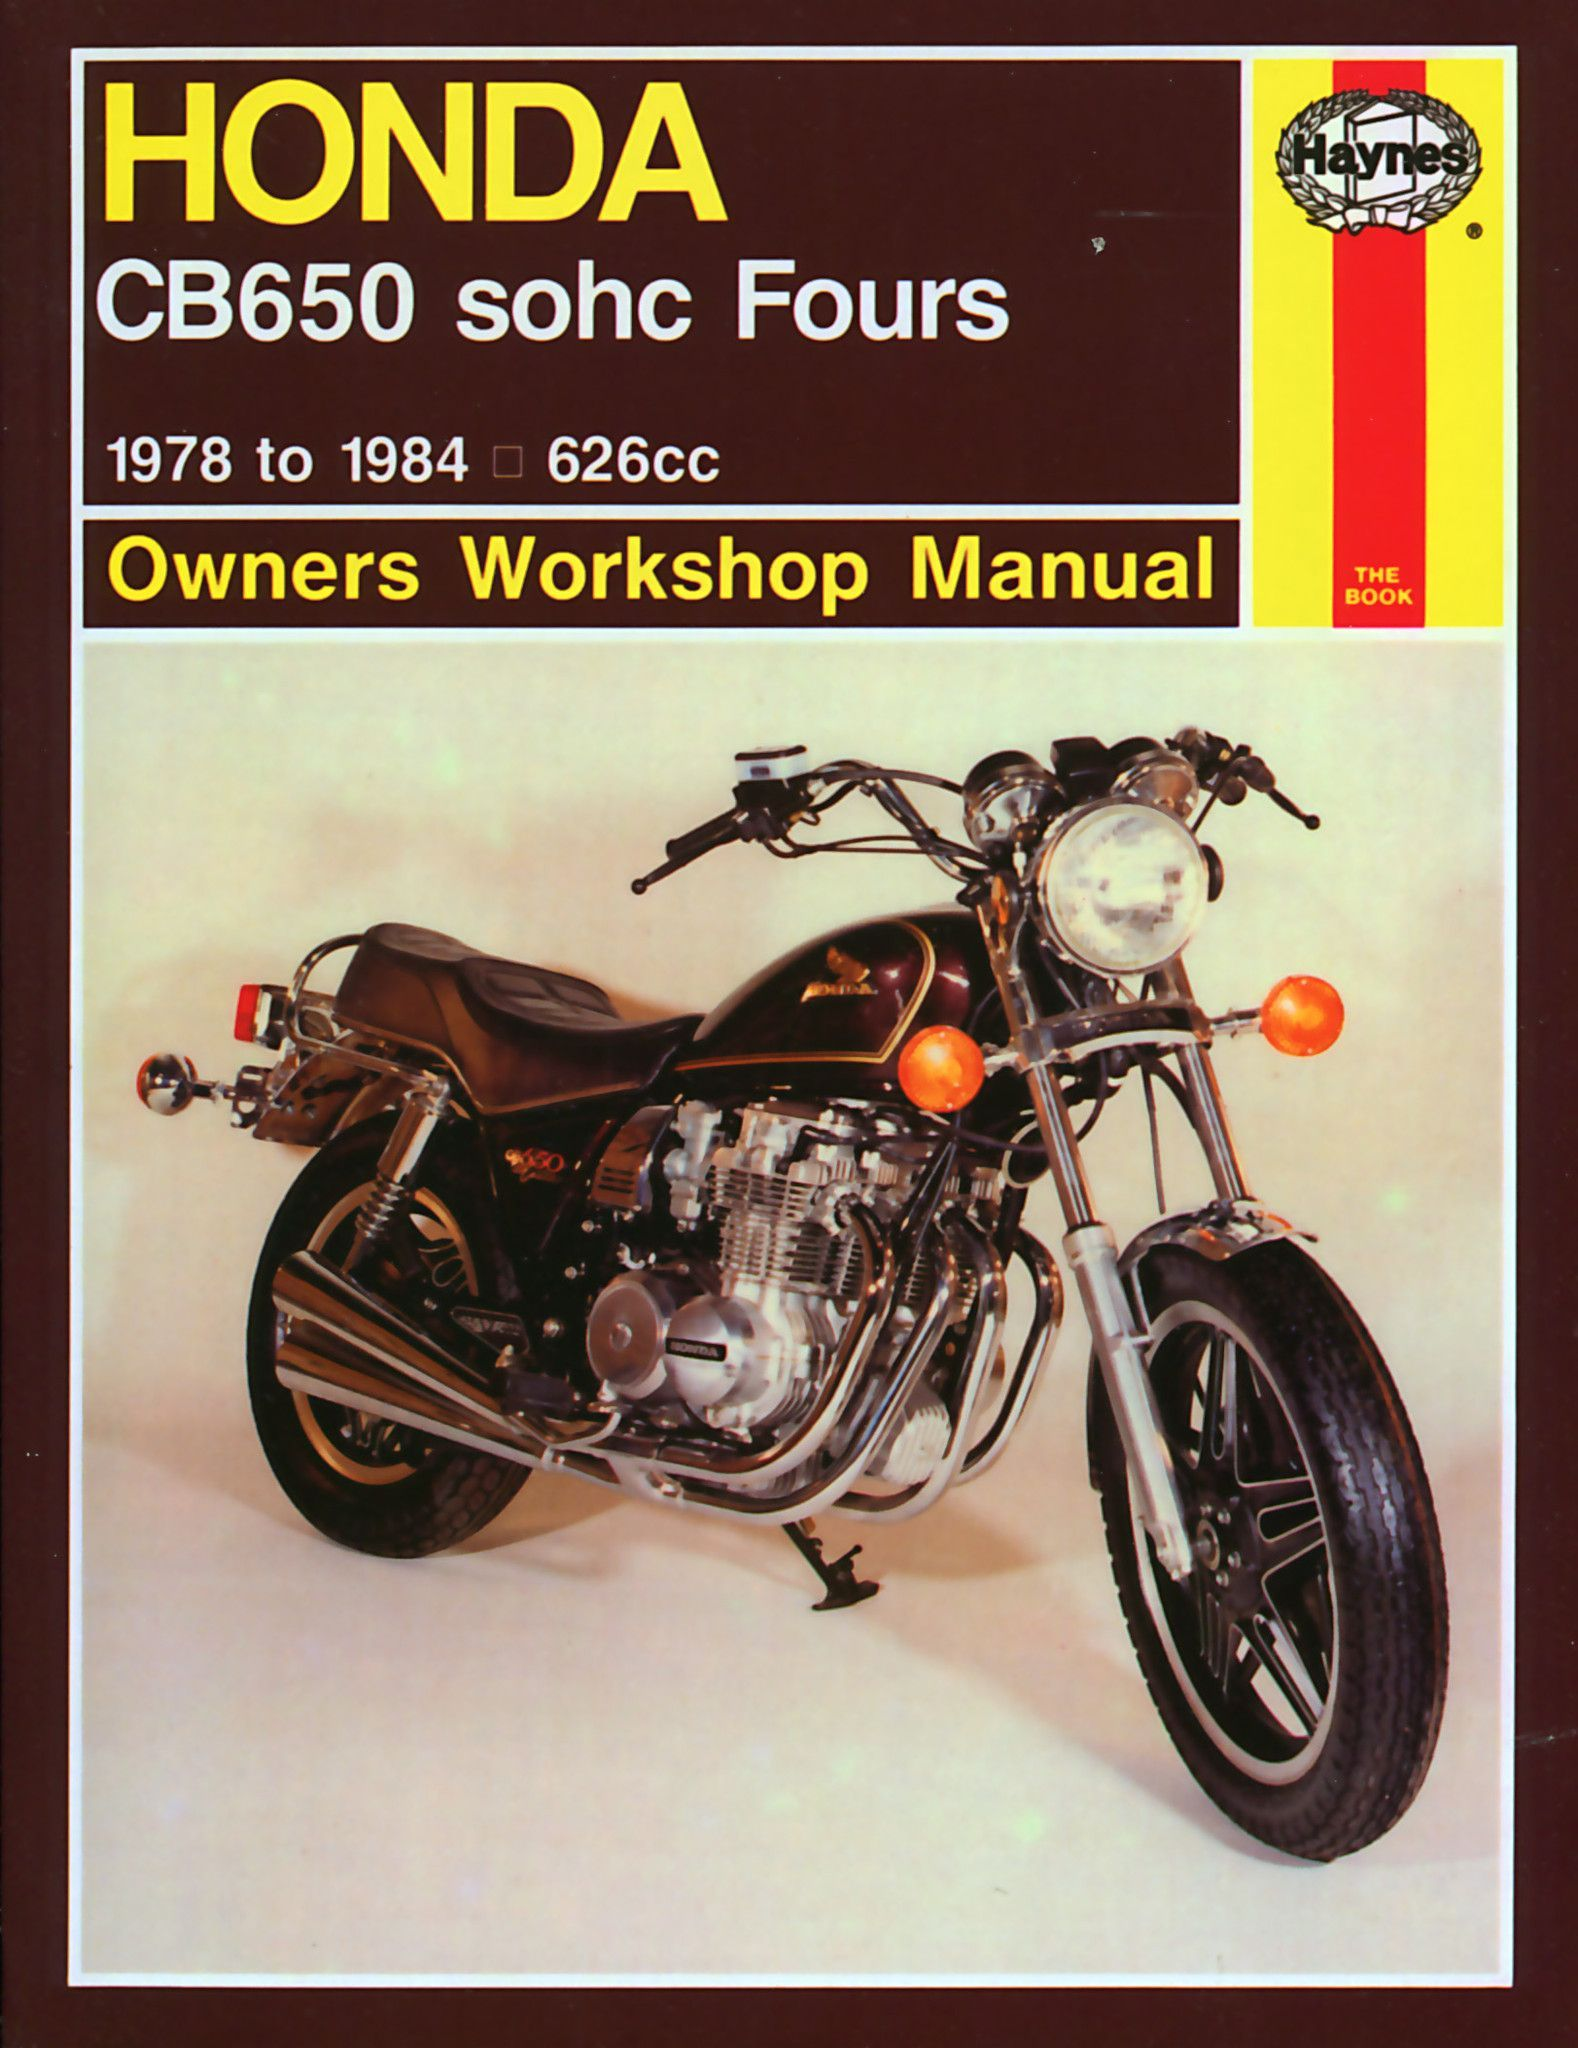 haynes m665 service repair manual for 1979 82 honda cb650 sohc rh pinterest com